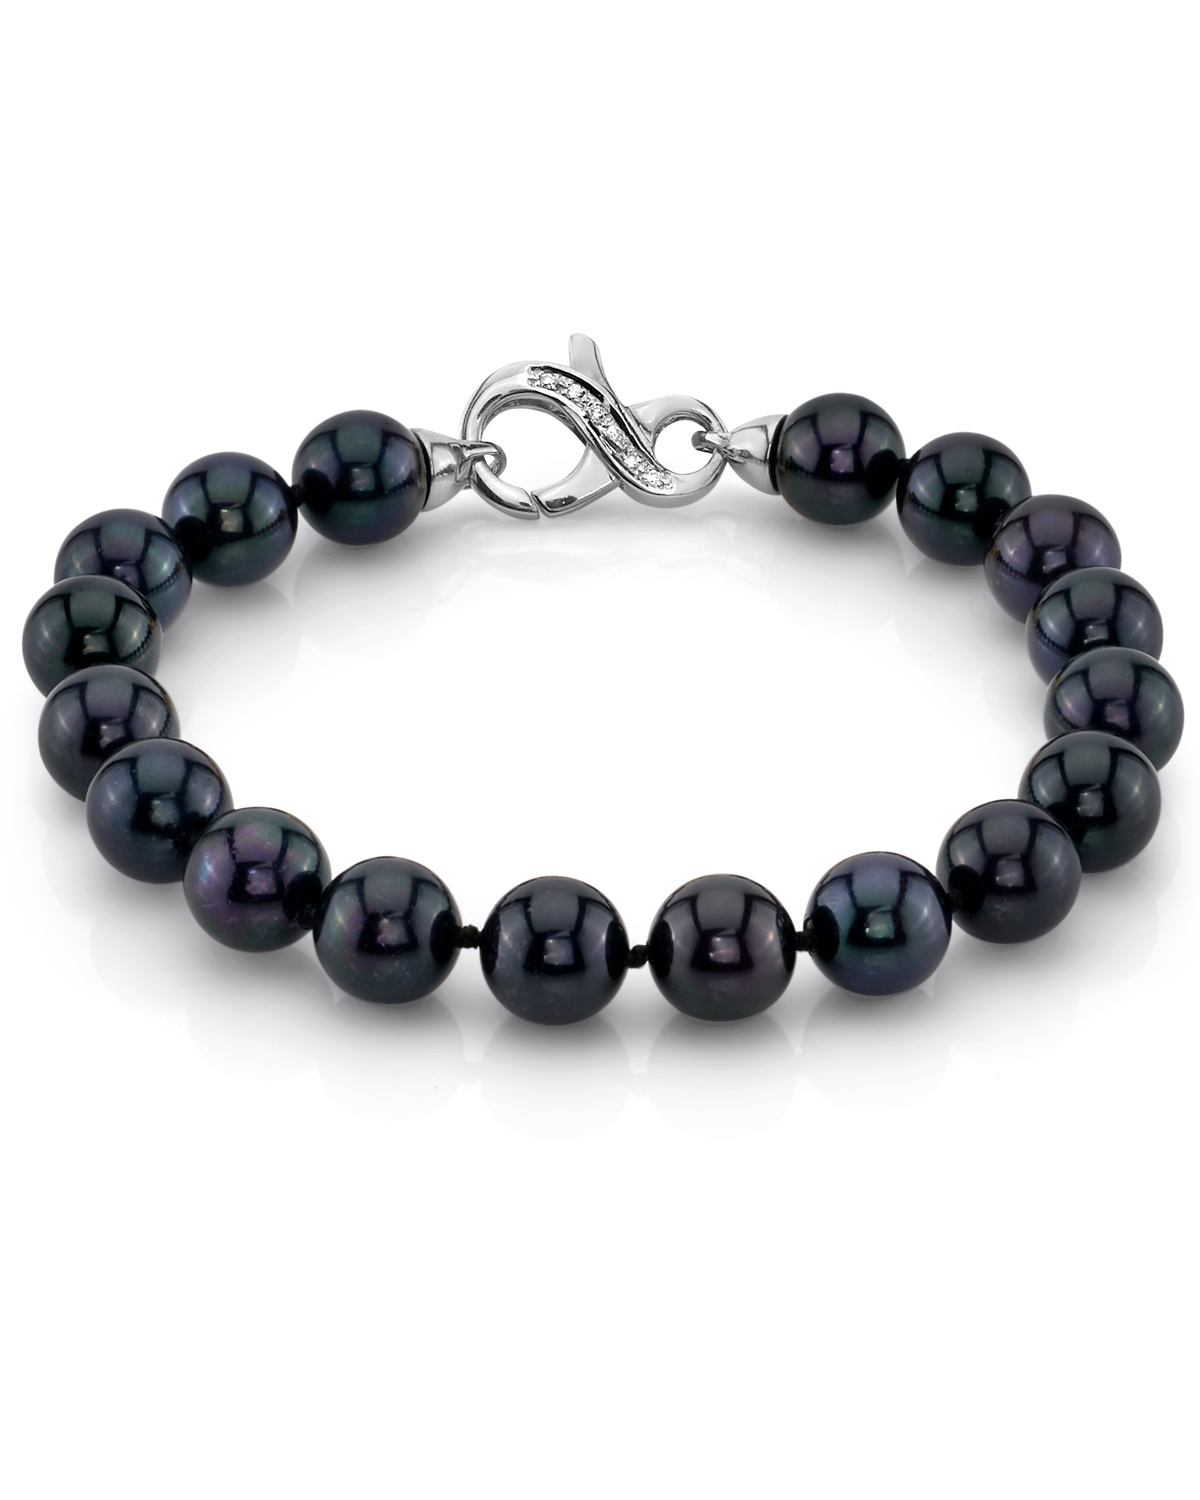 8.0-8.5mm Akoya Black Pearl Bracelet- Choose Your Quality